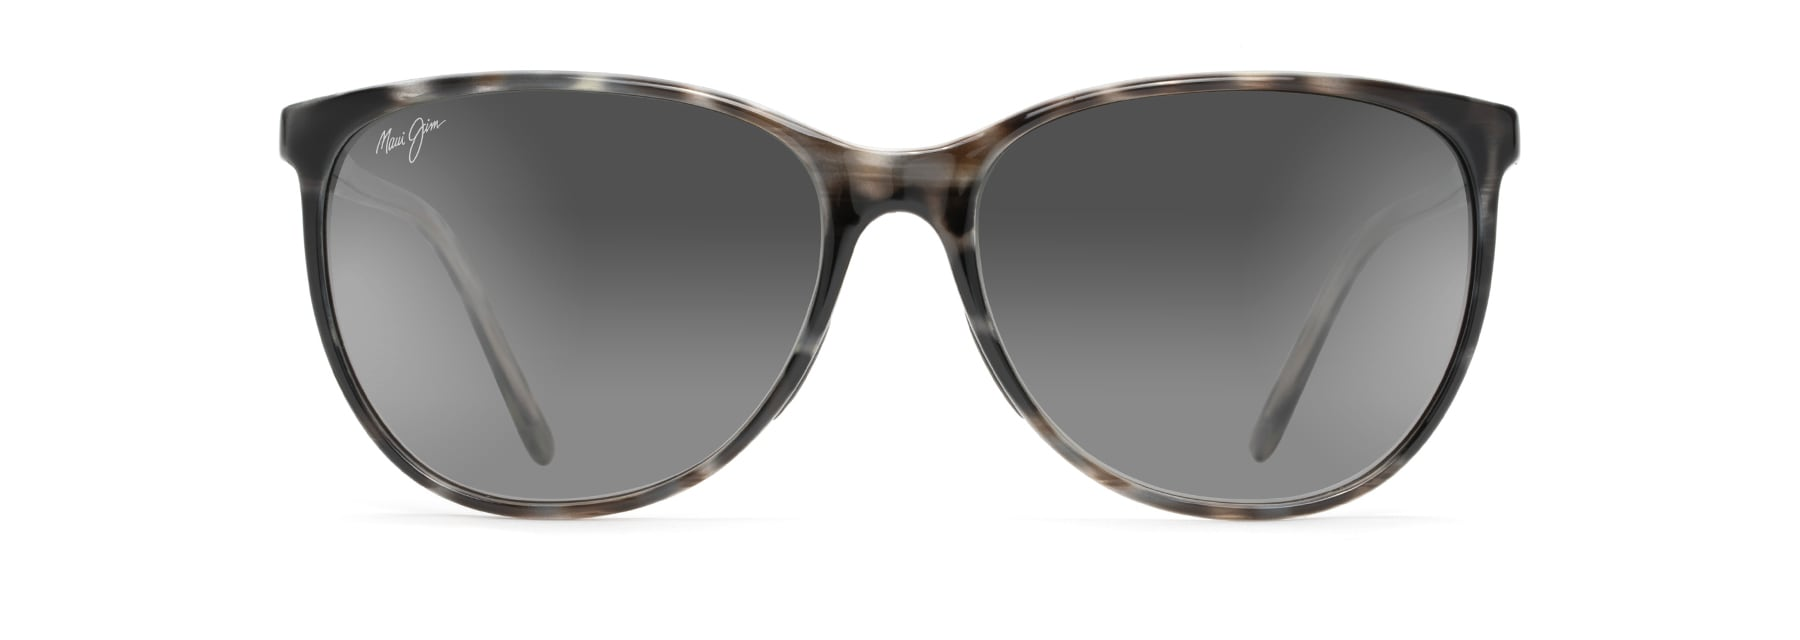 ocean polarized sunglasses maui jim®grey tortoise stripe ocean front view